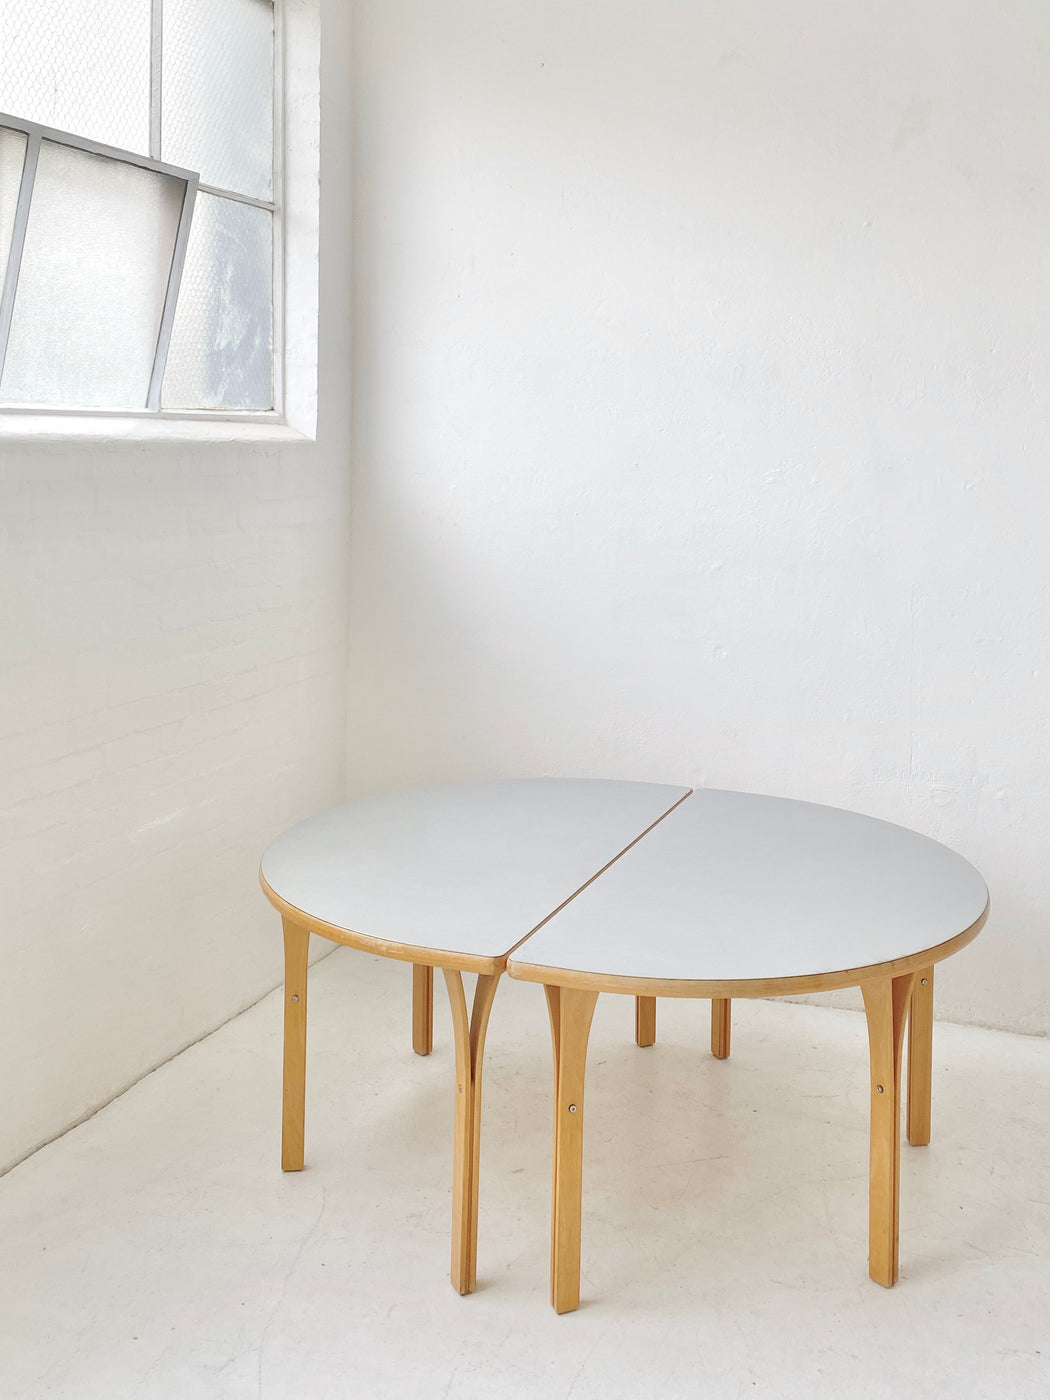 Thygesen & Sørensen Dining Table